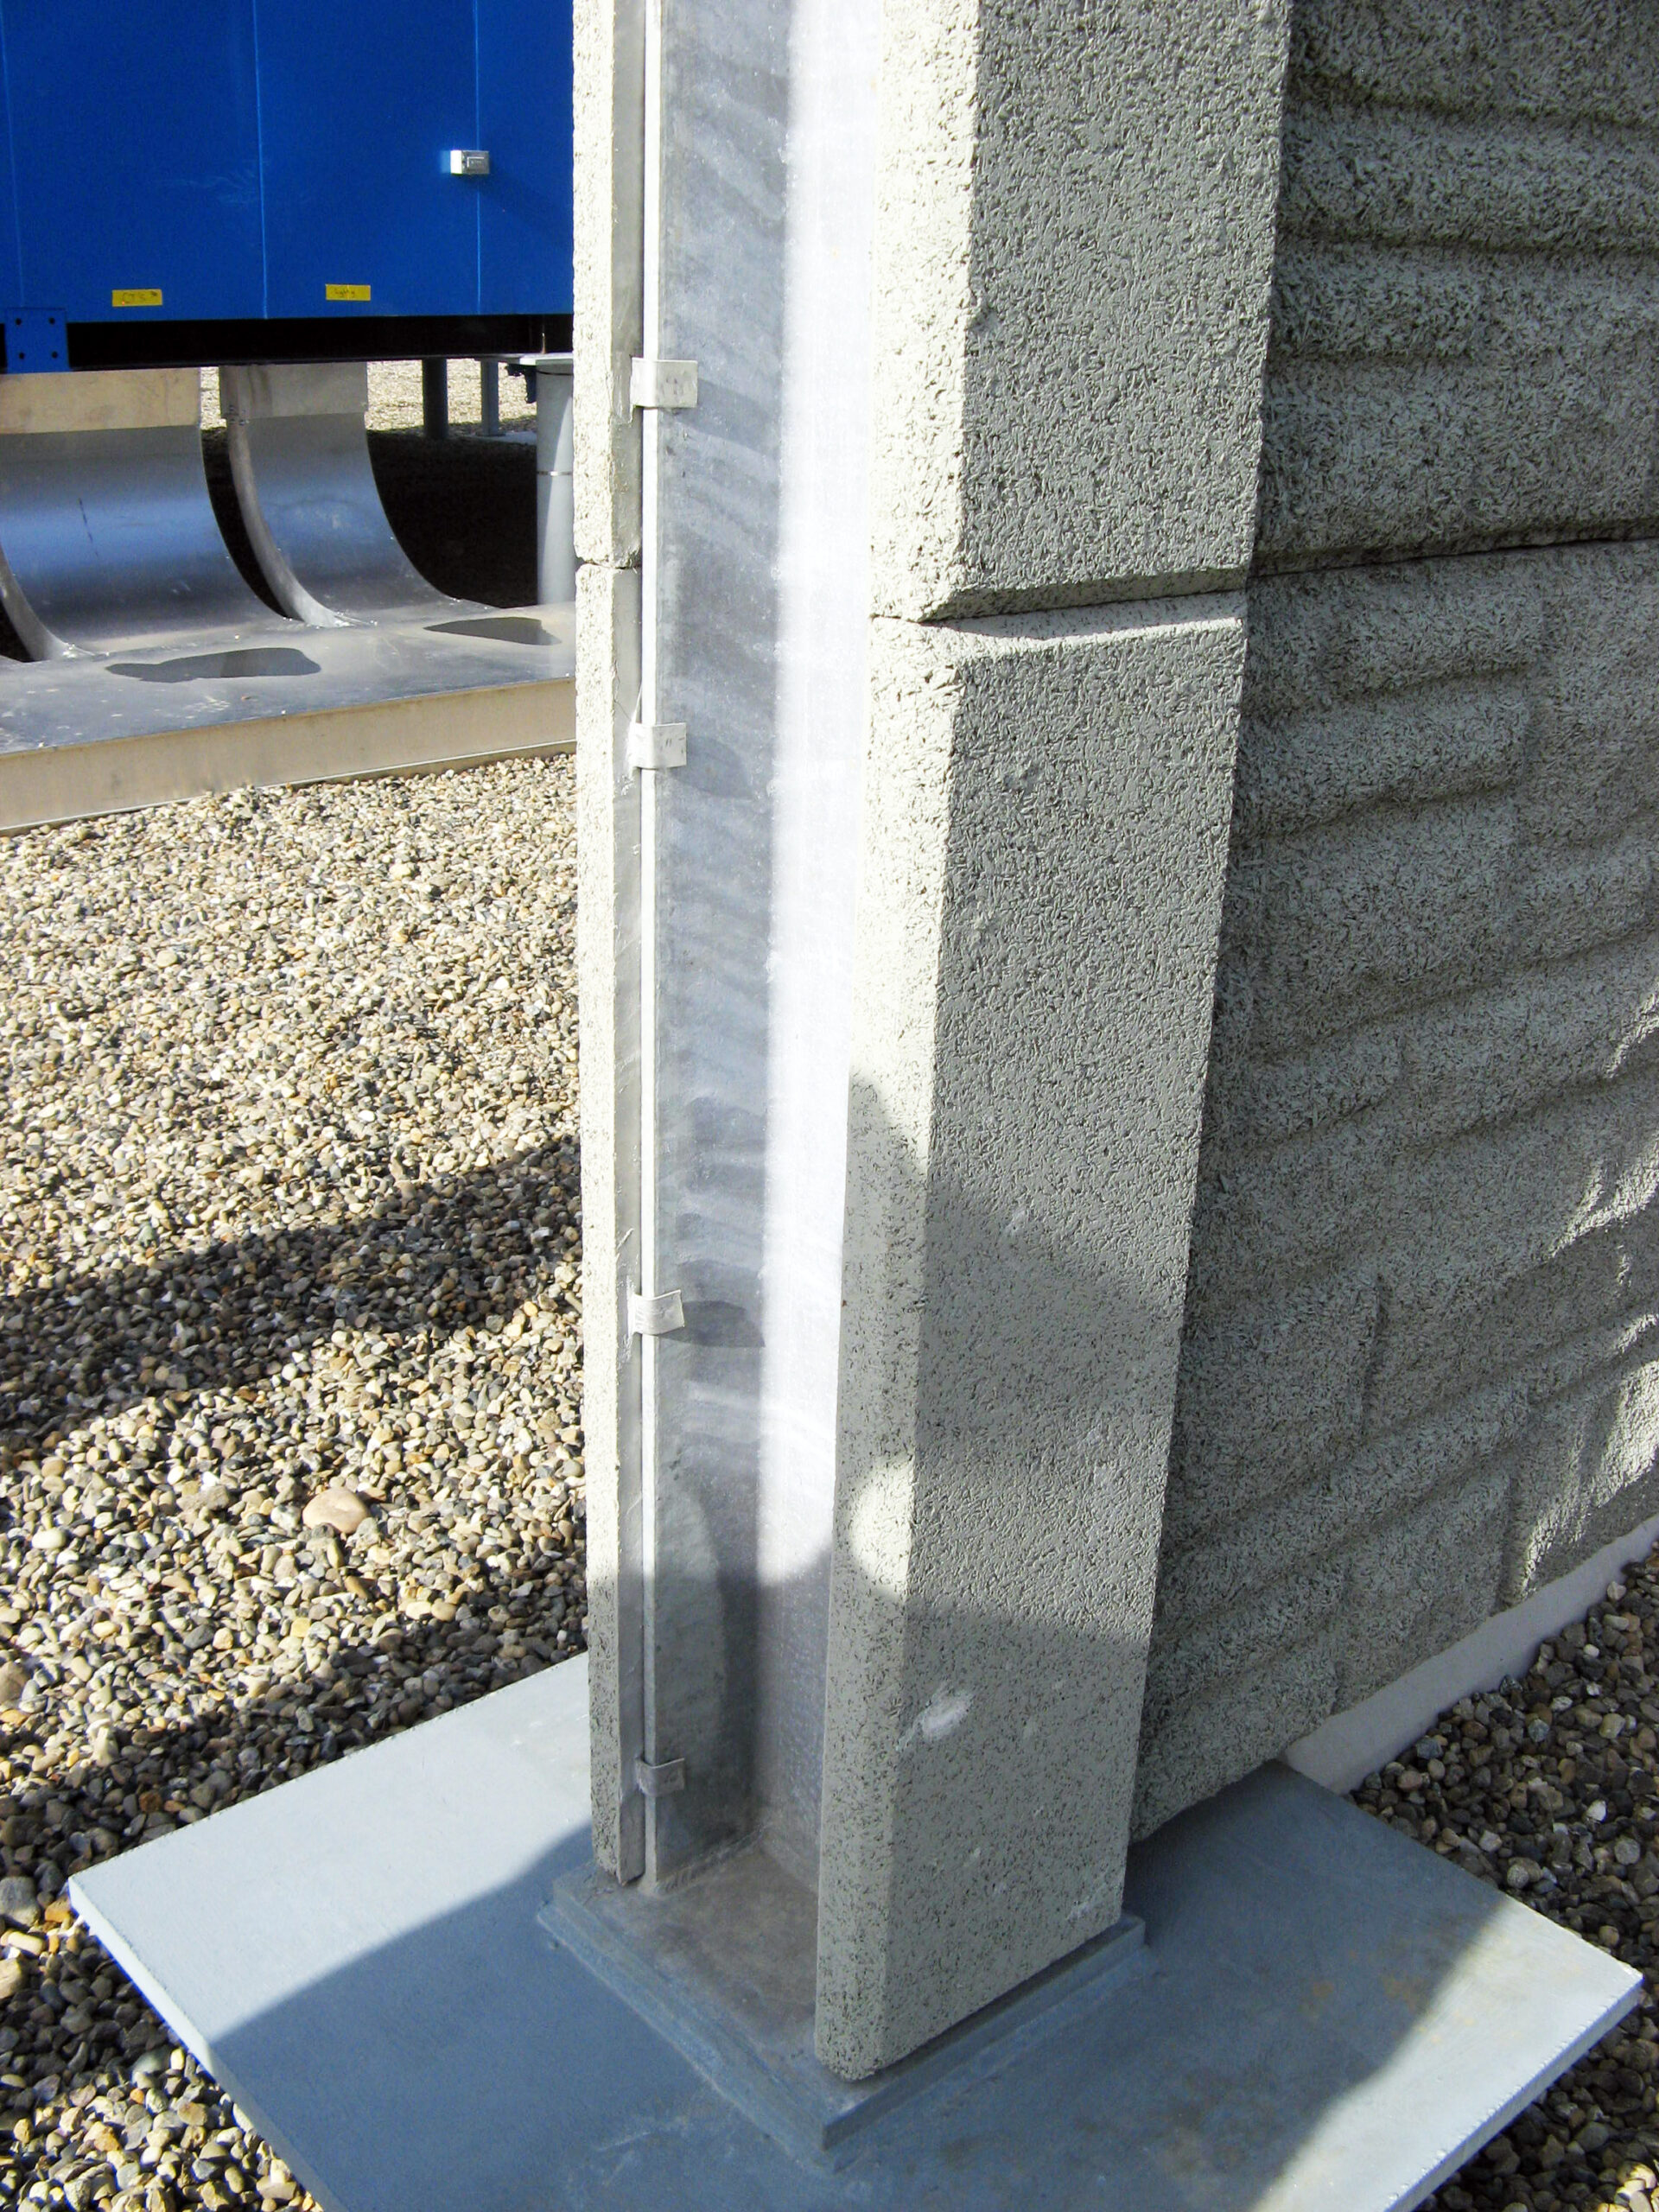 Durisol steel column facing panels clip on easily and provide a 2 hour fire rating.